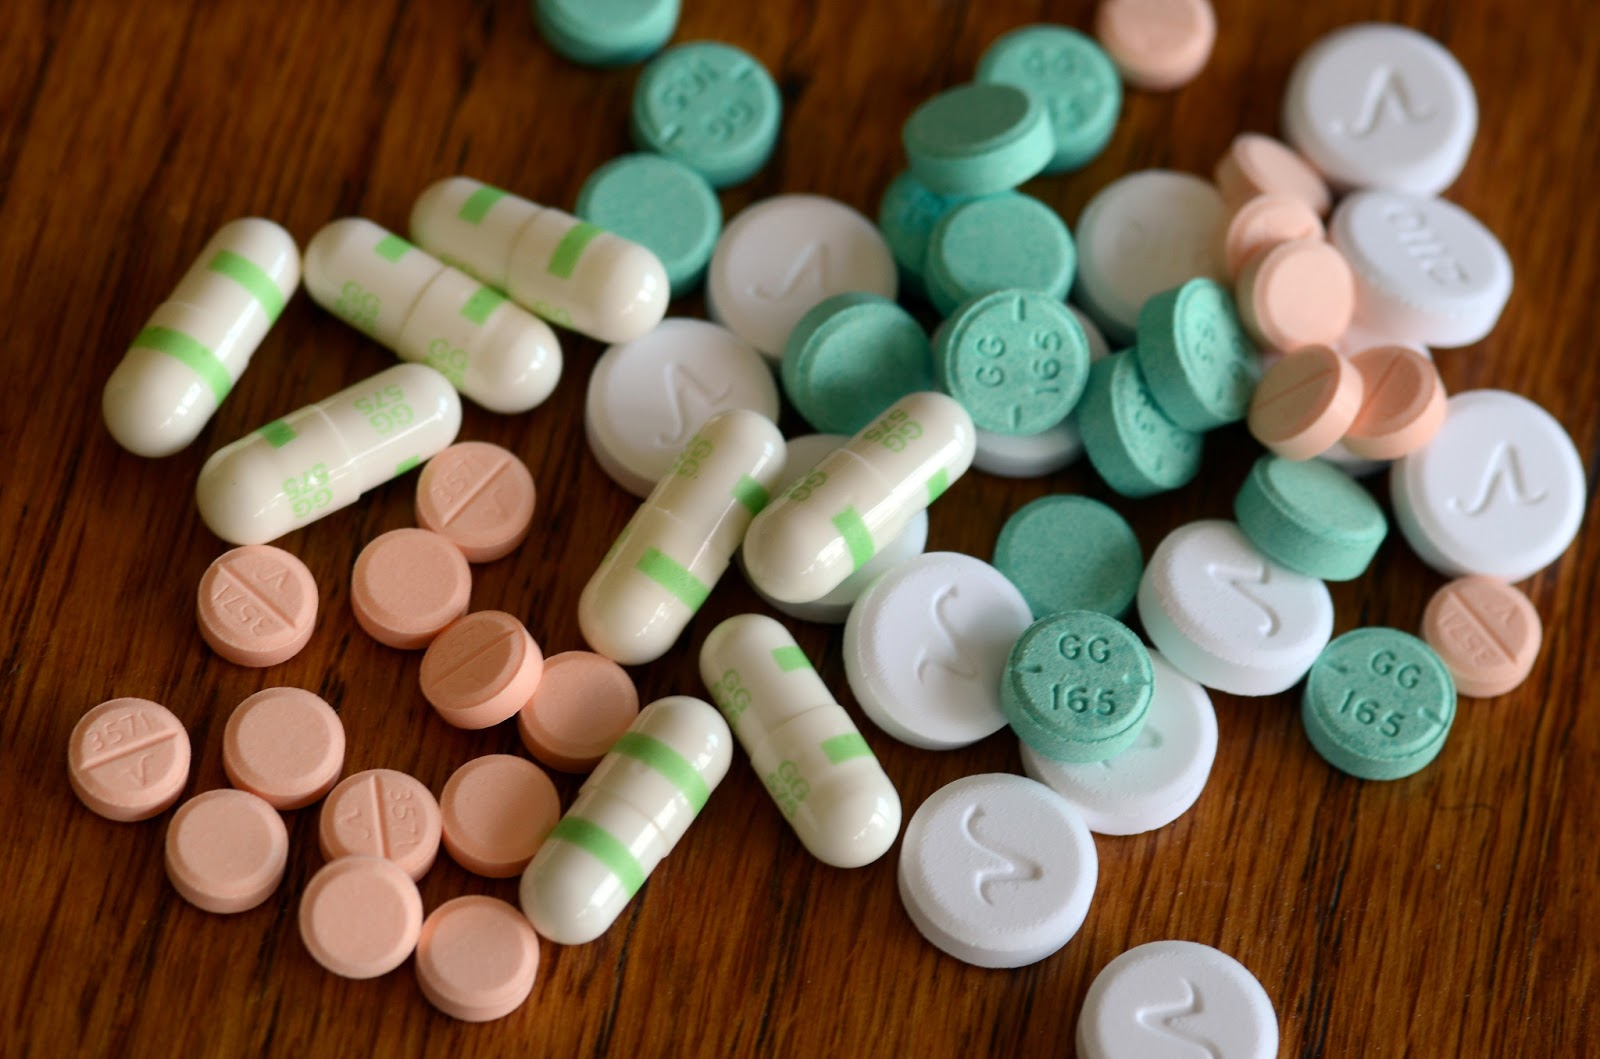 percocet,oxycotin,xanax,Tramadol etc at dirt cheap prices